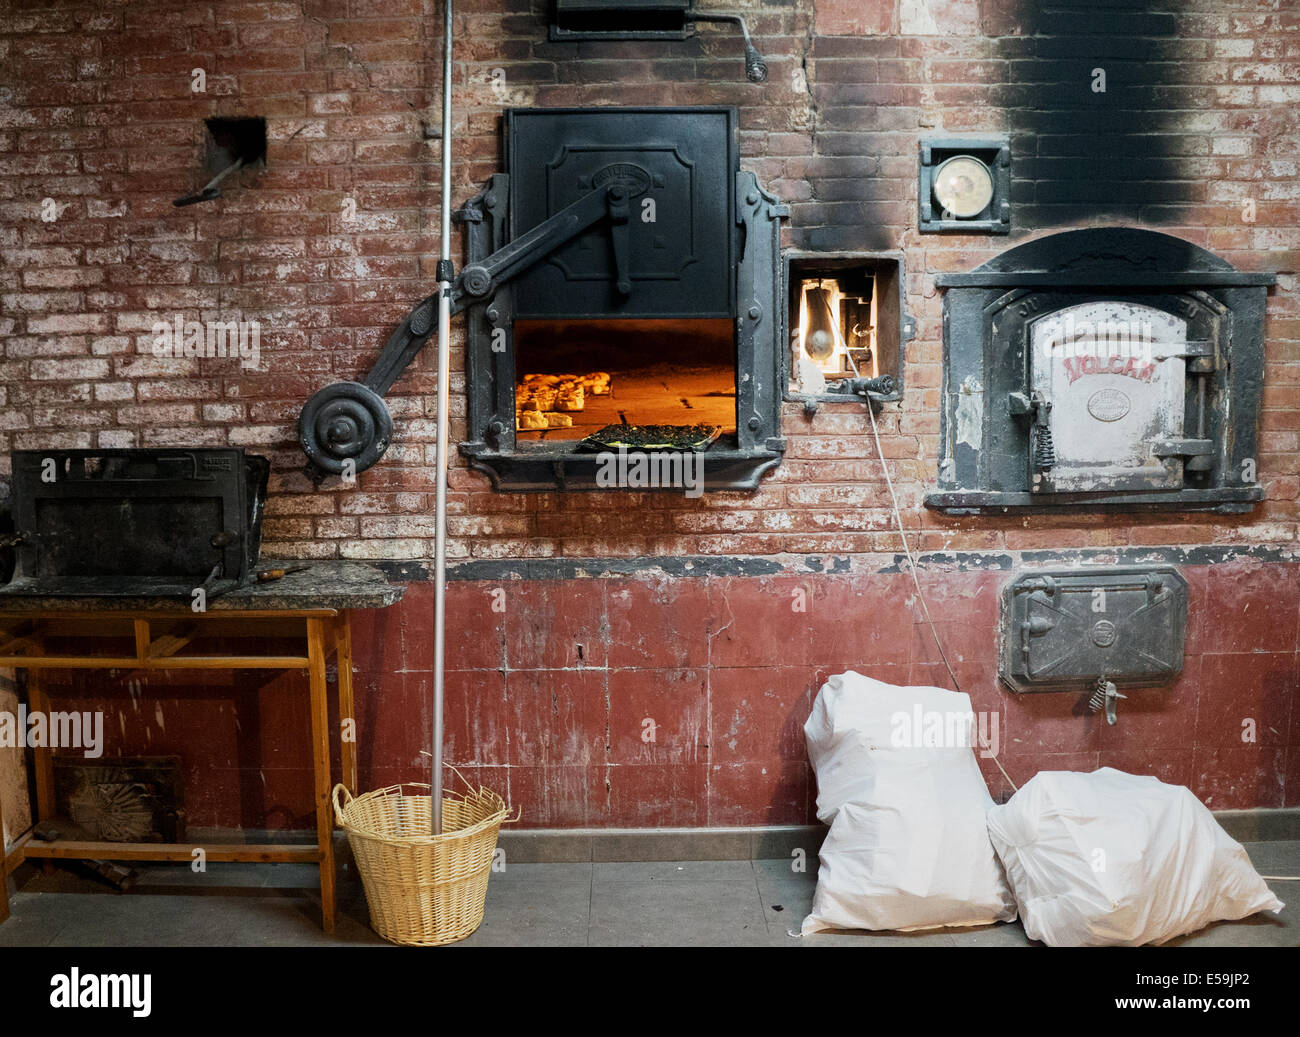 Interior View Of An Old Traditional Spanish Bakery Bread Shop With Wood Oven Baking Loaves And Pastries Pies